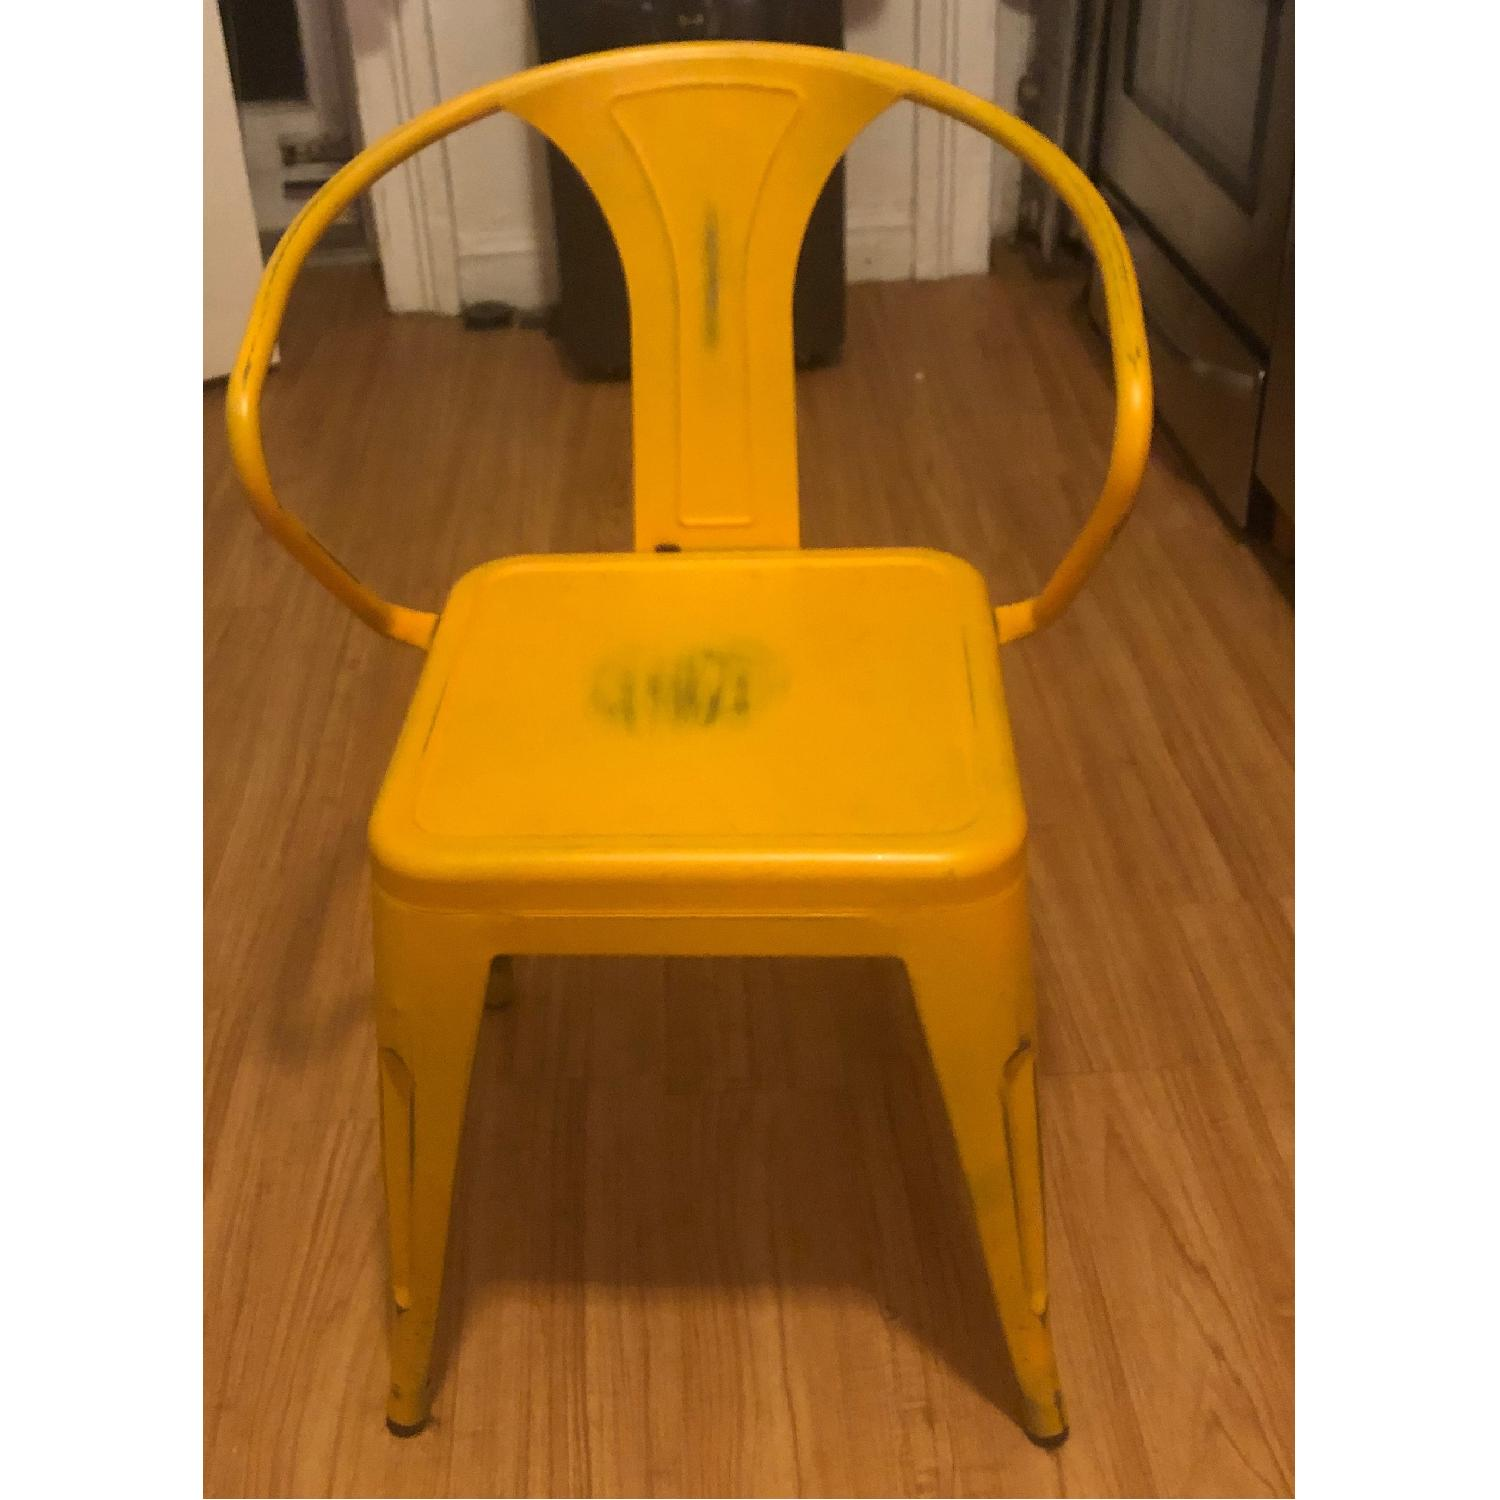 Modway Promenade Dining Chairs in Yellow-0